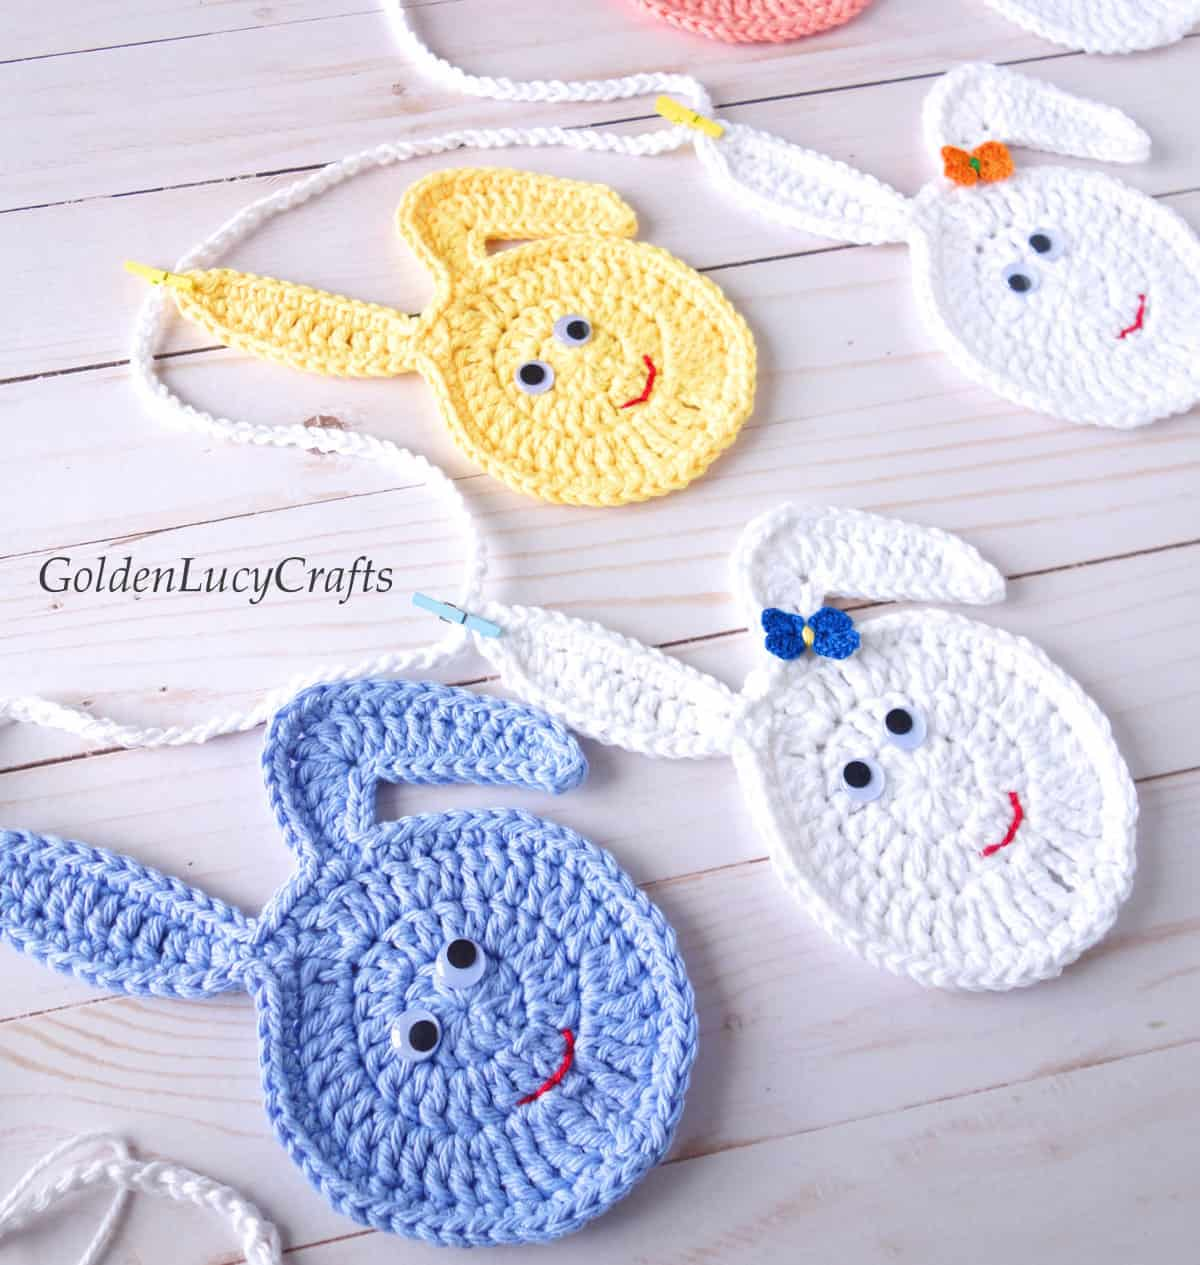 Crochet Easter garland, close up image.